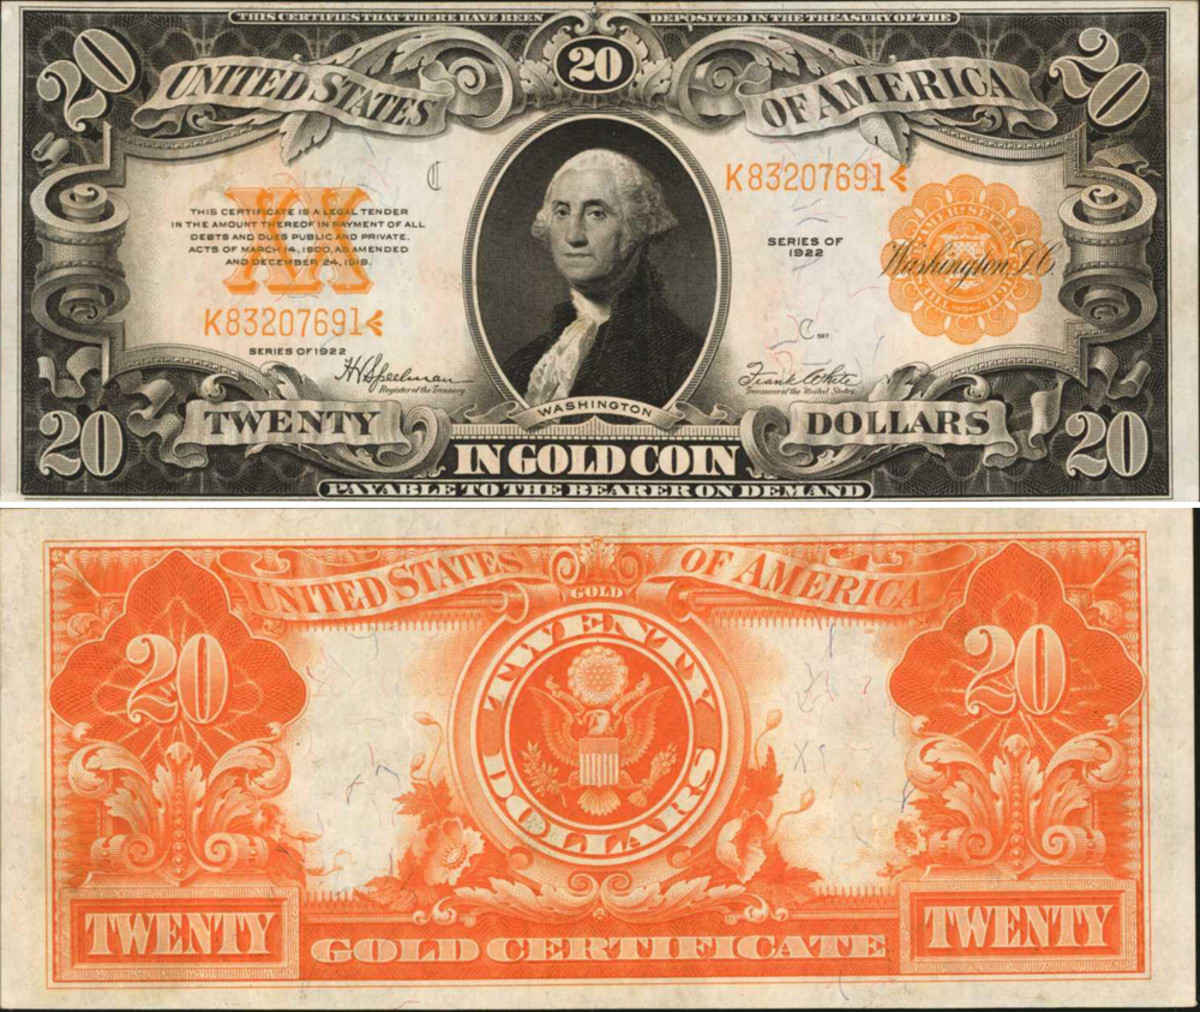 1922 $20 Gold Certificate graded PMG Choice Uncirculated 63 realized $1,800, when it had been estimated at $800-$1,200. The gold seal and serial number provides bright contrast, adding to its eye appeal.